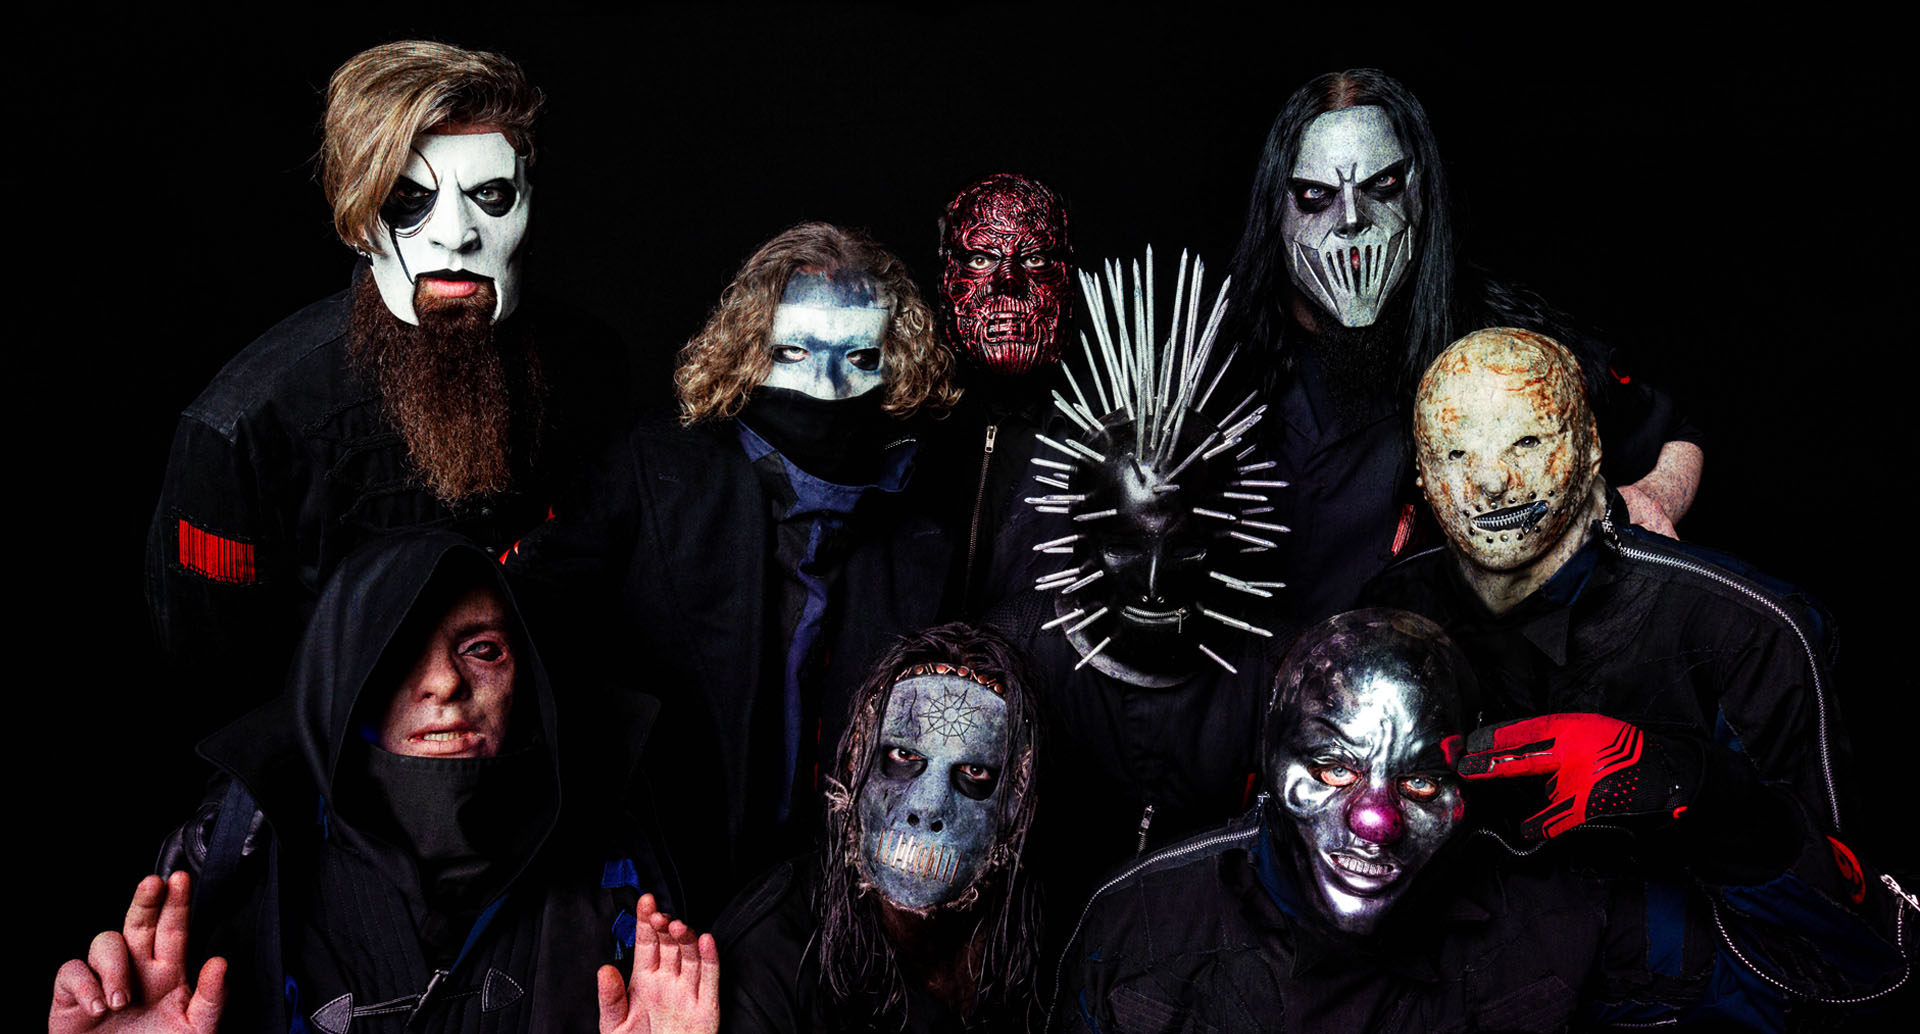 Slipknot and Trivium postpone Asian tour because of COVID-19